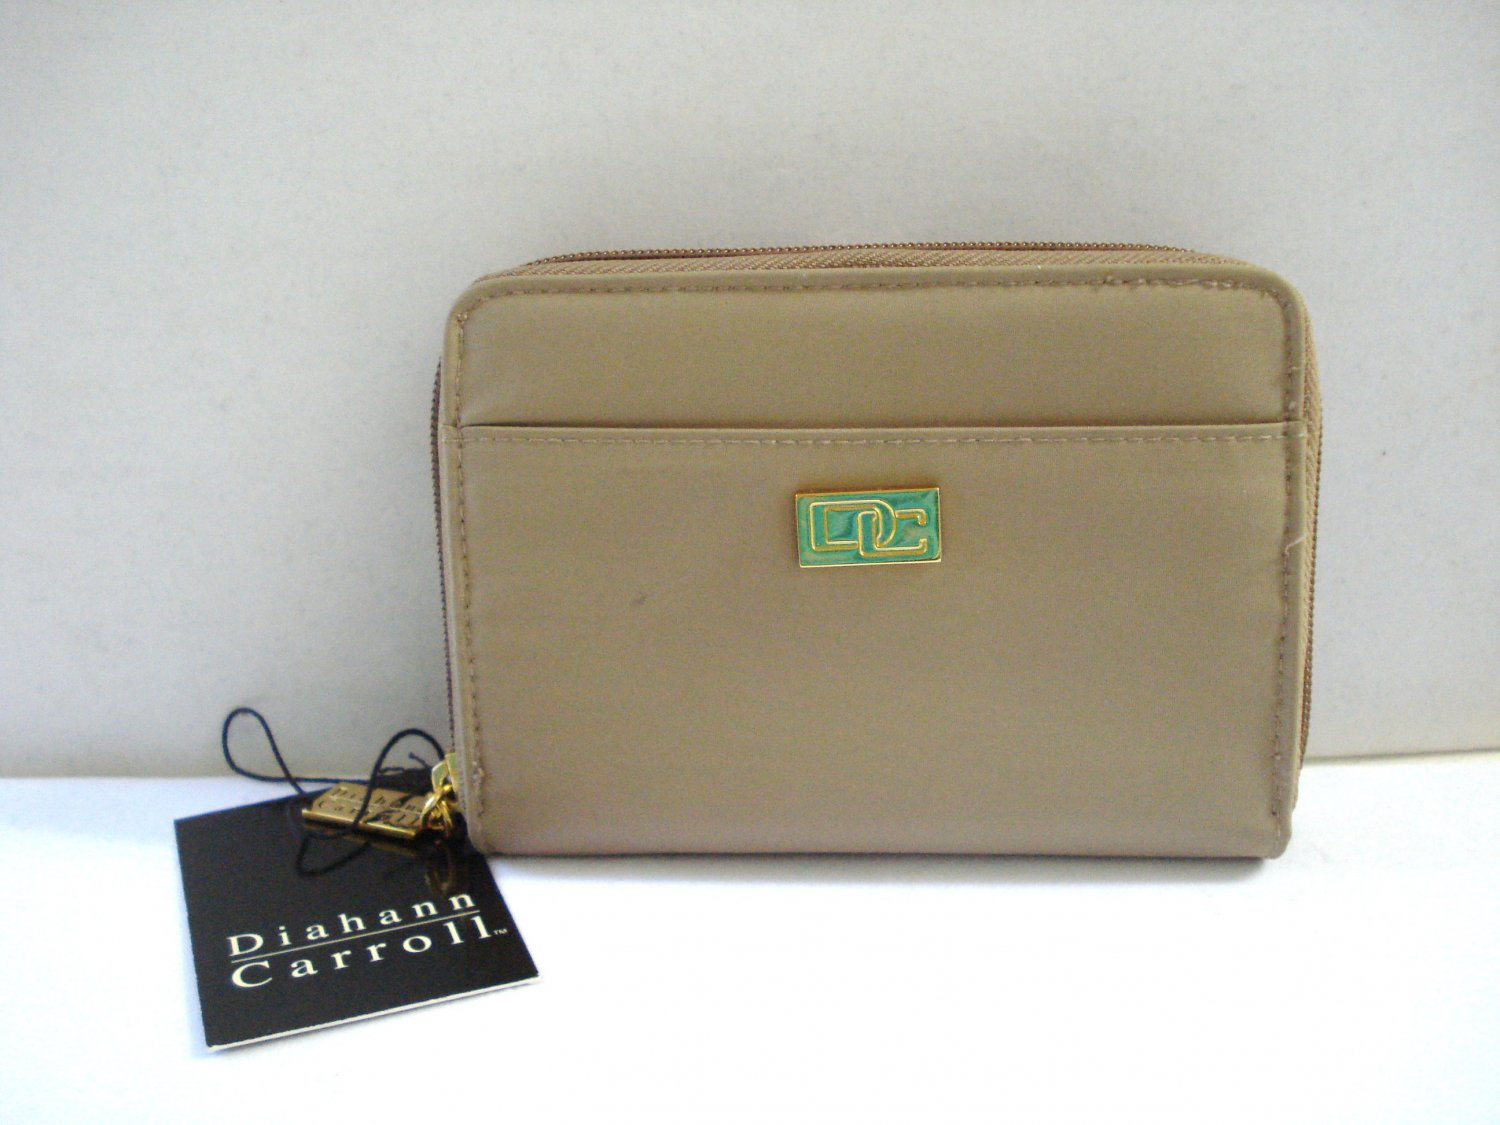 Diahann Carroll nylon French purse style wallet unused vintage w tags cafe au lait ll3181